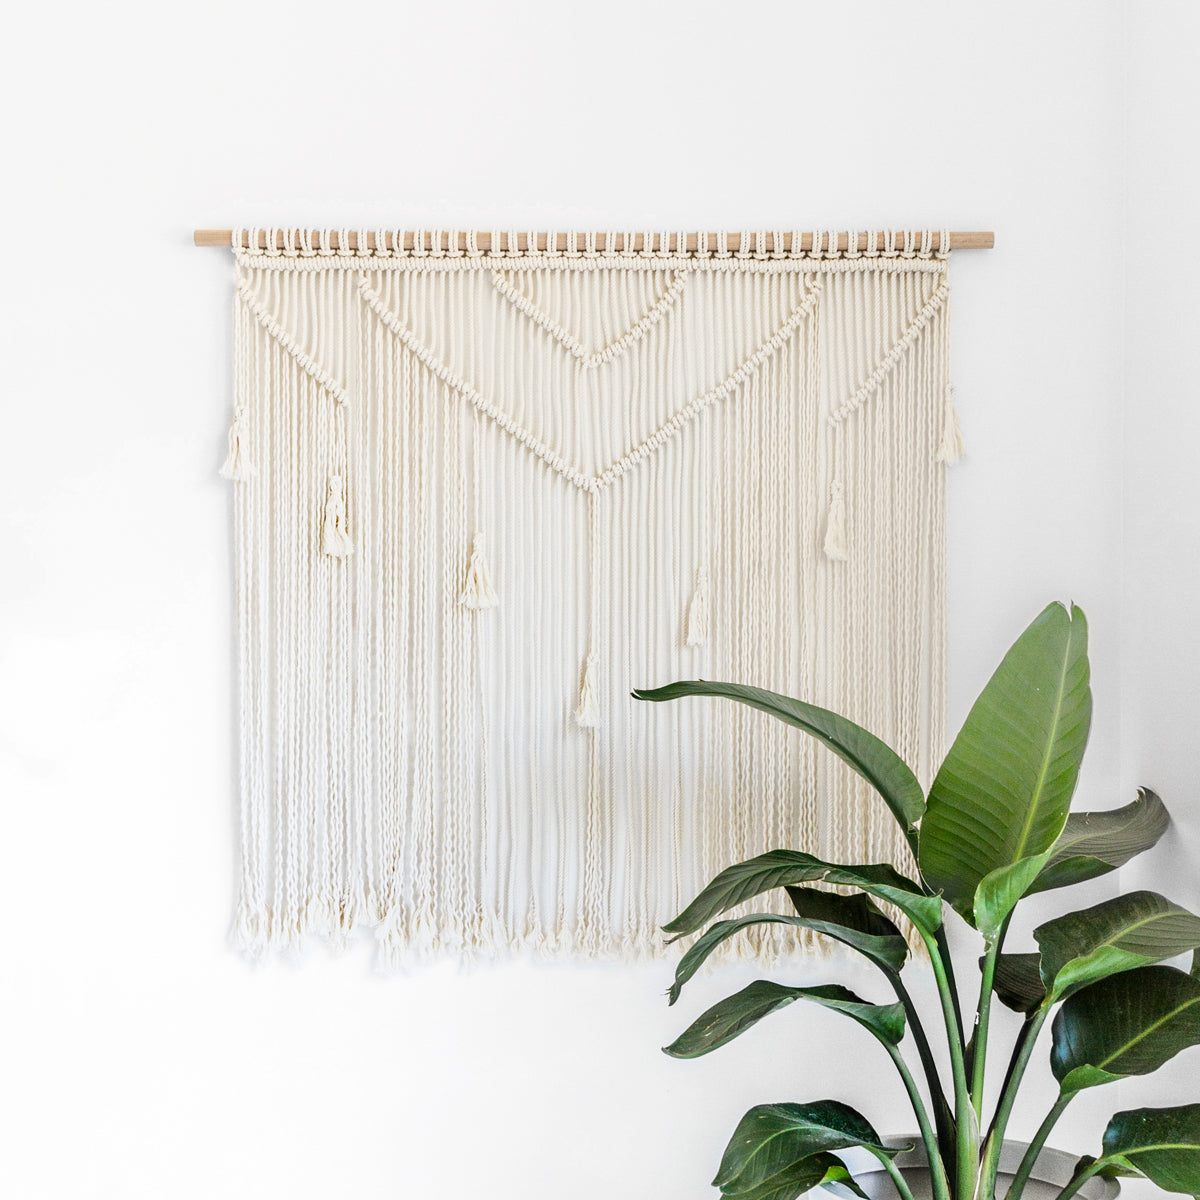 HANDMADE WALL HANGING - LARGE